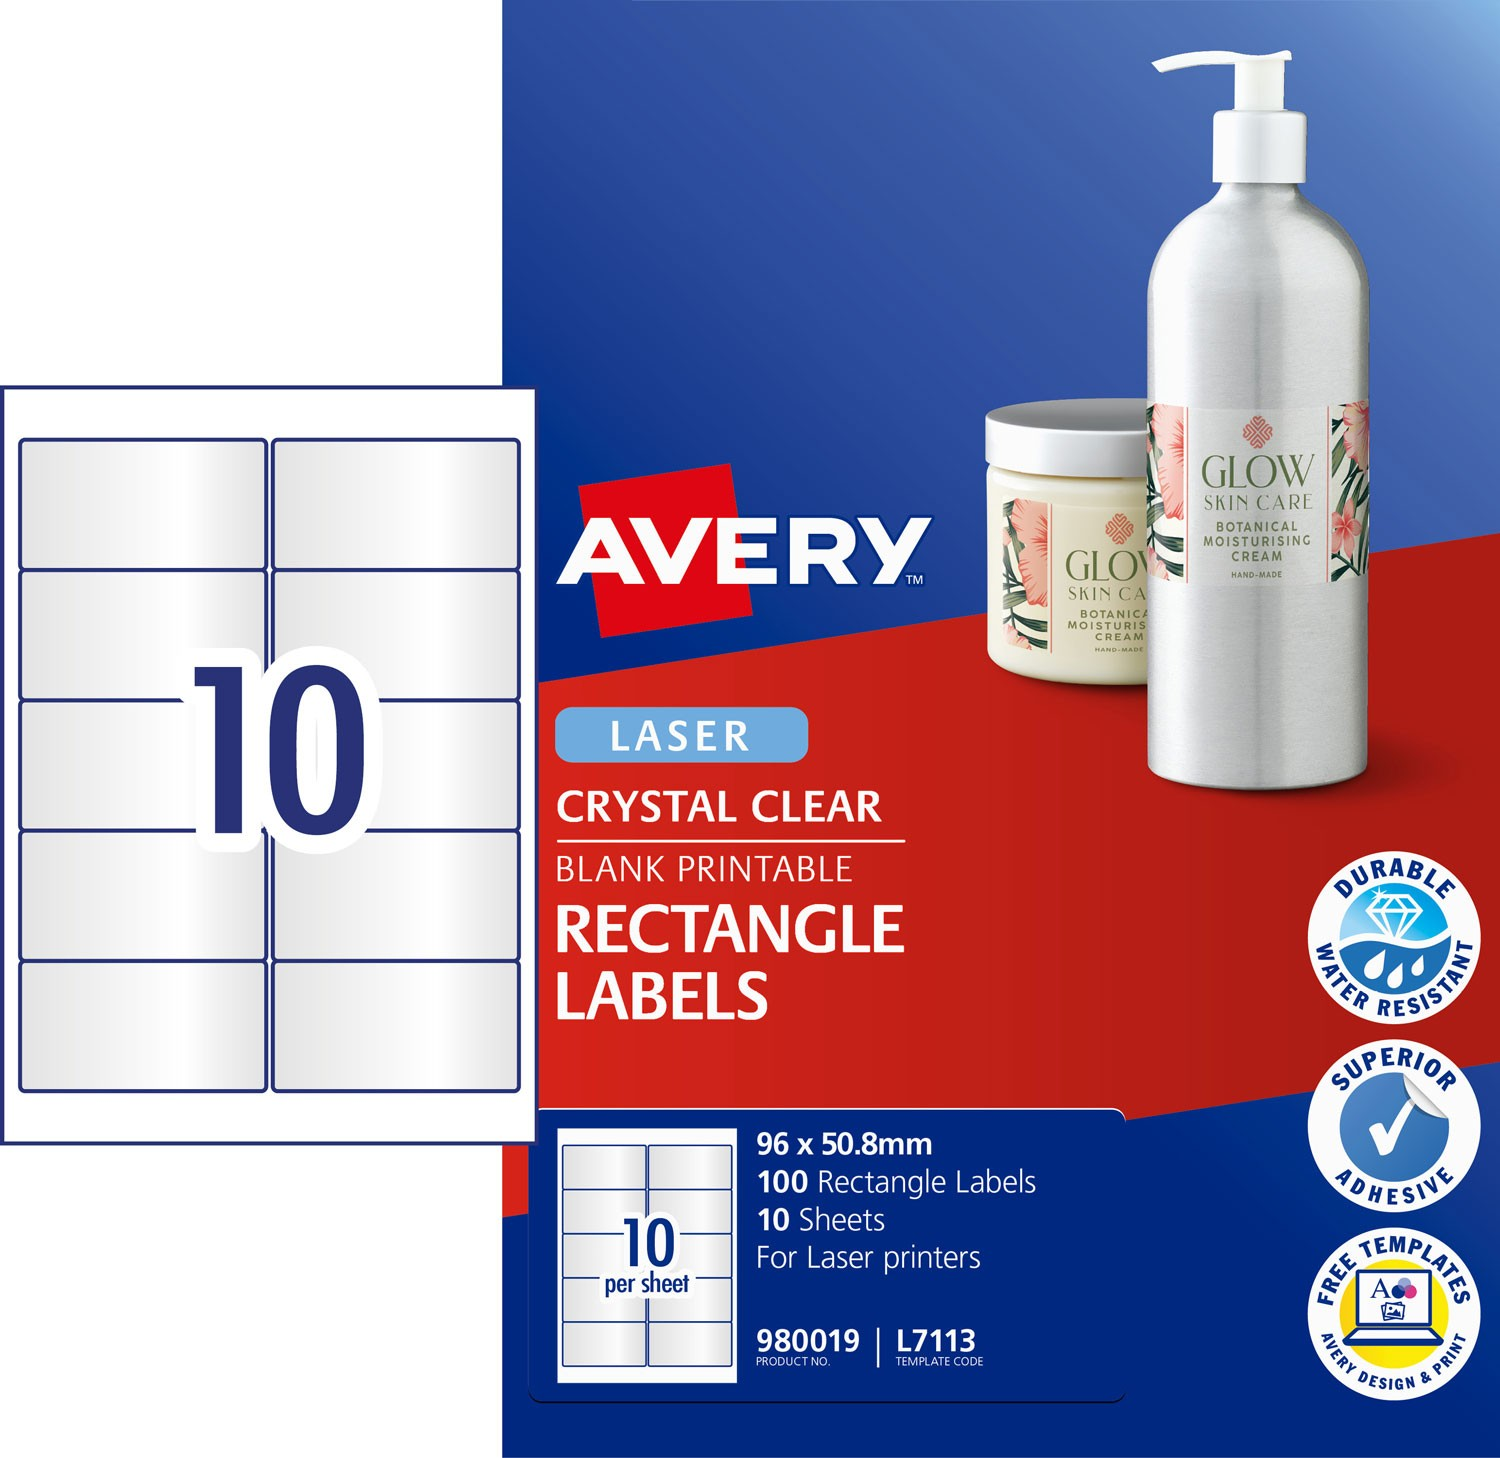 avery product